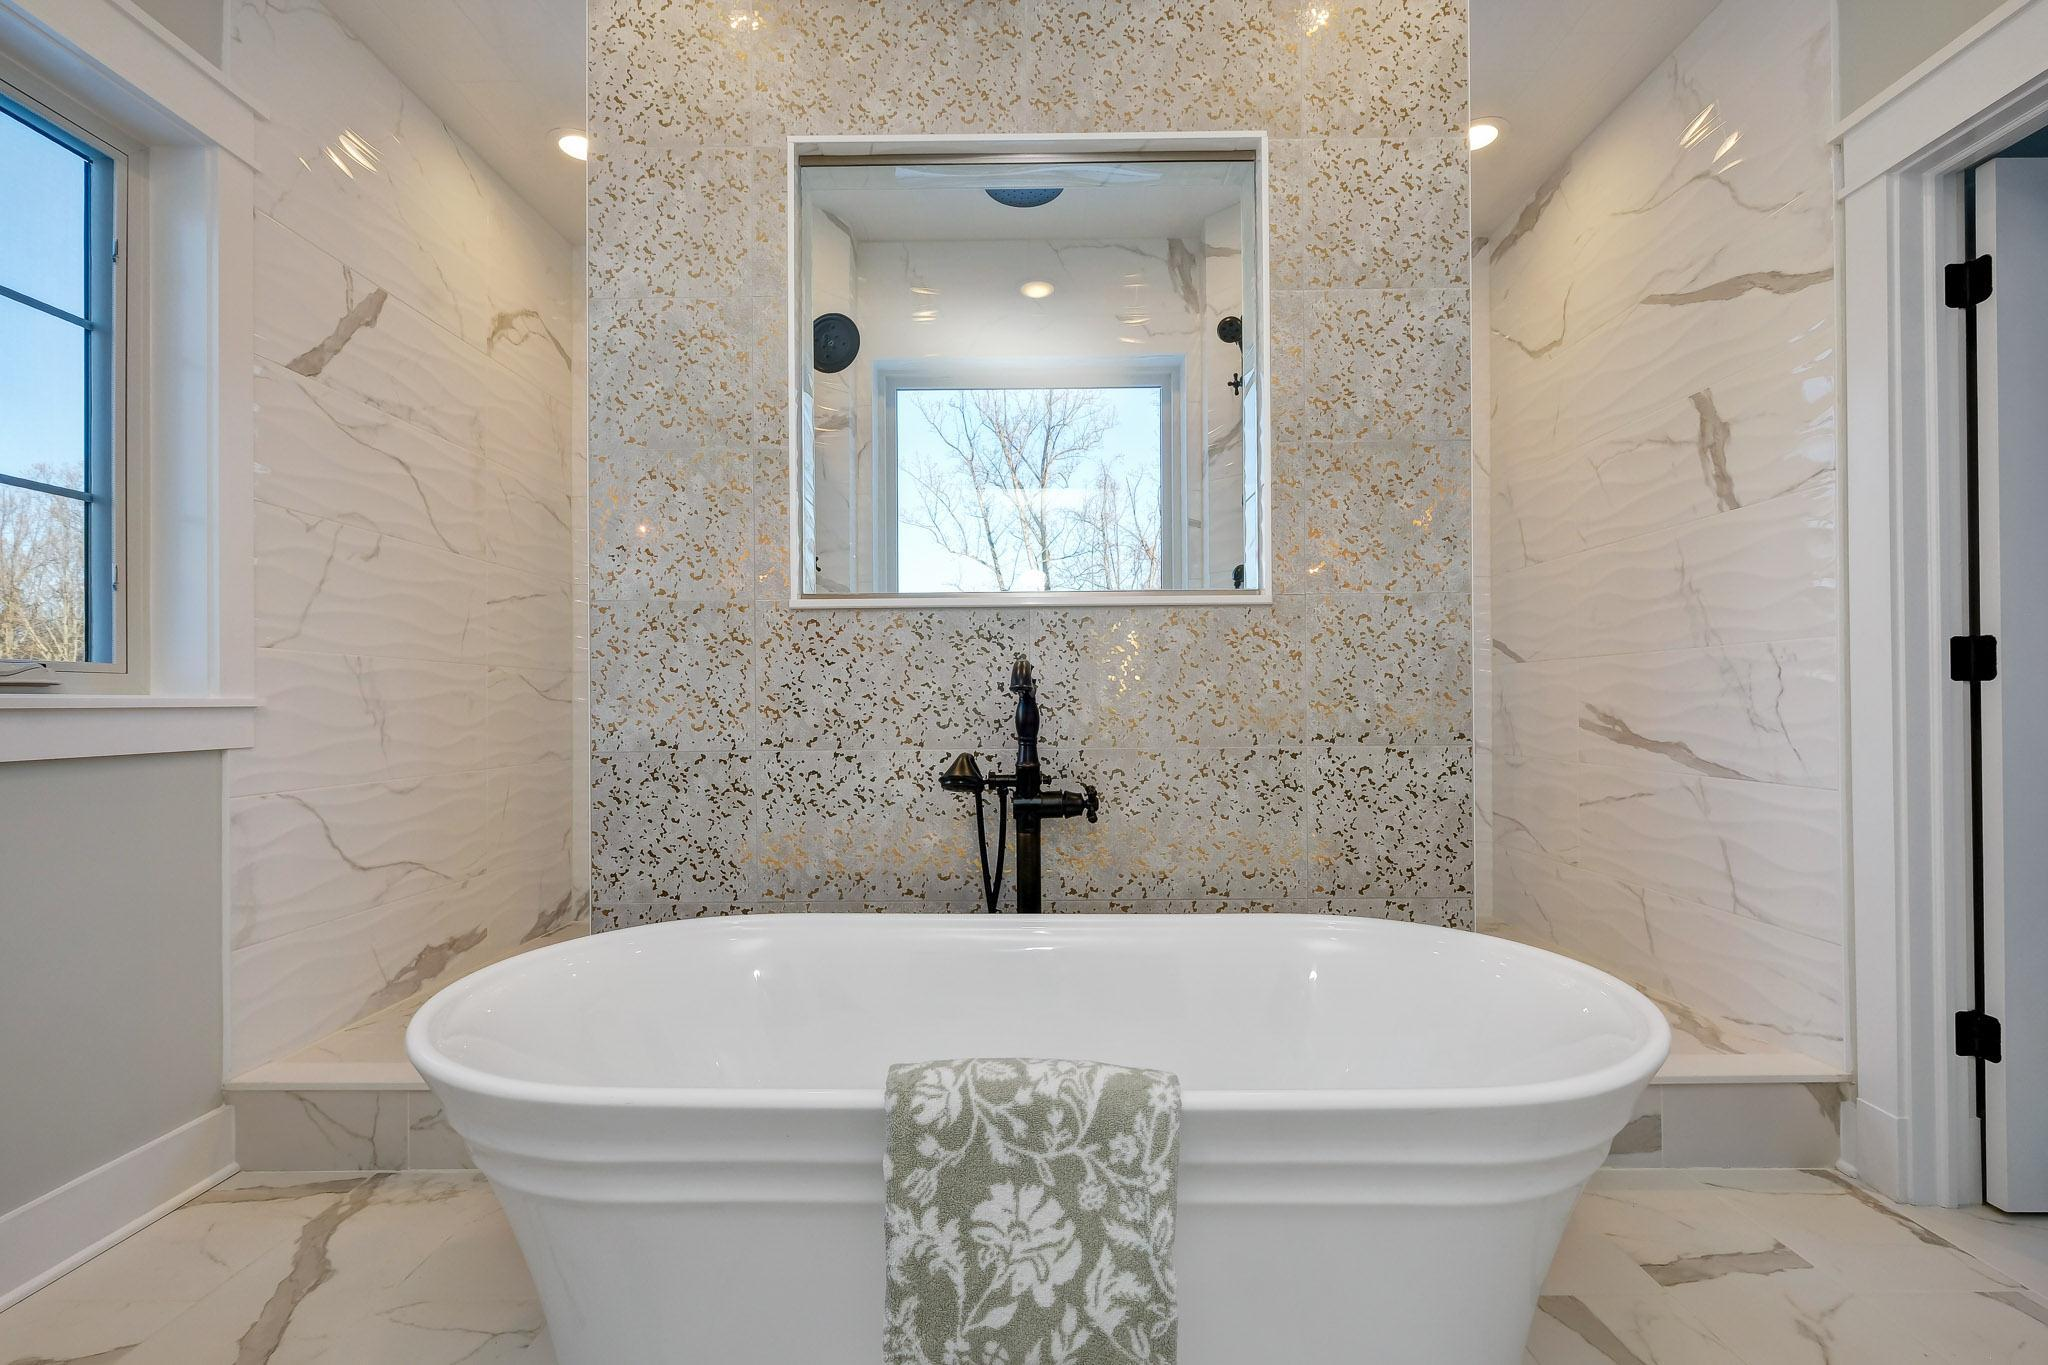 Bathroom featured in the Aspen By Infinity Custom Homes in Pittsburgh, PA